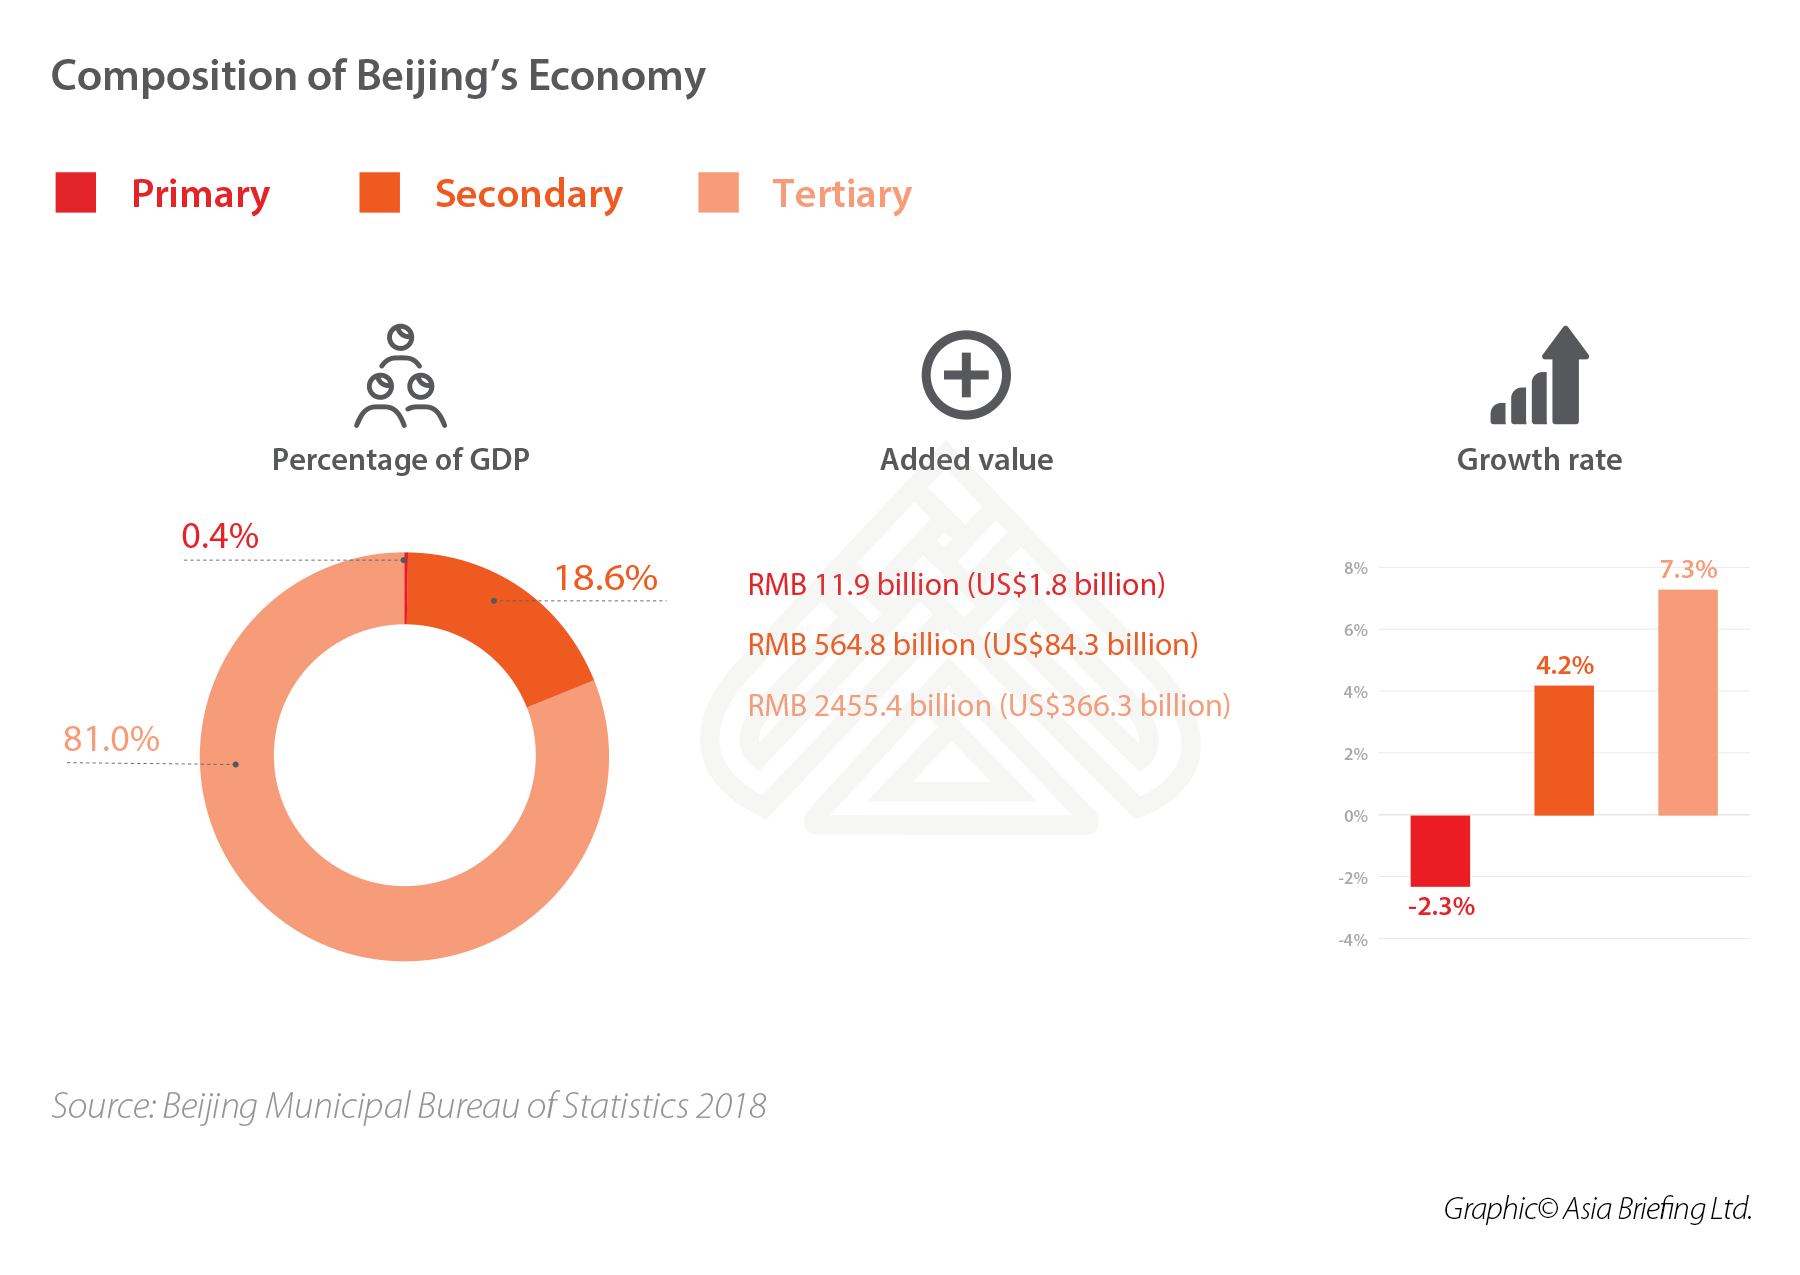 Composition of Beijing's Economy